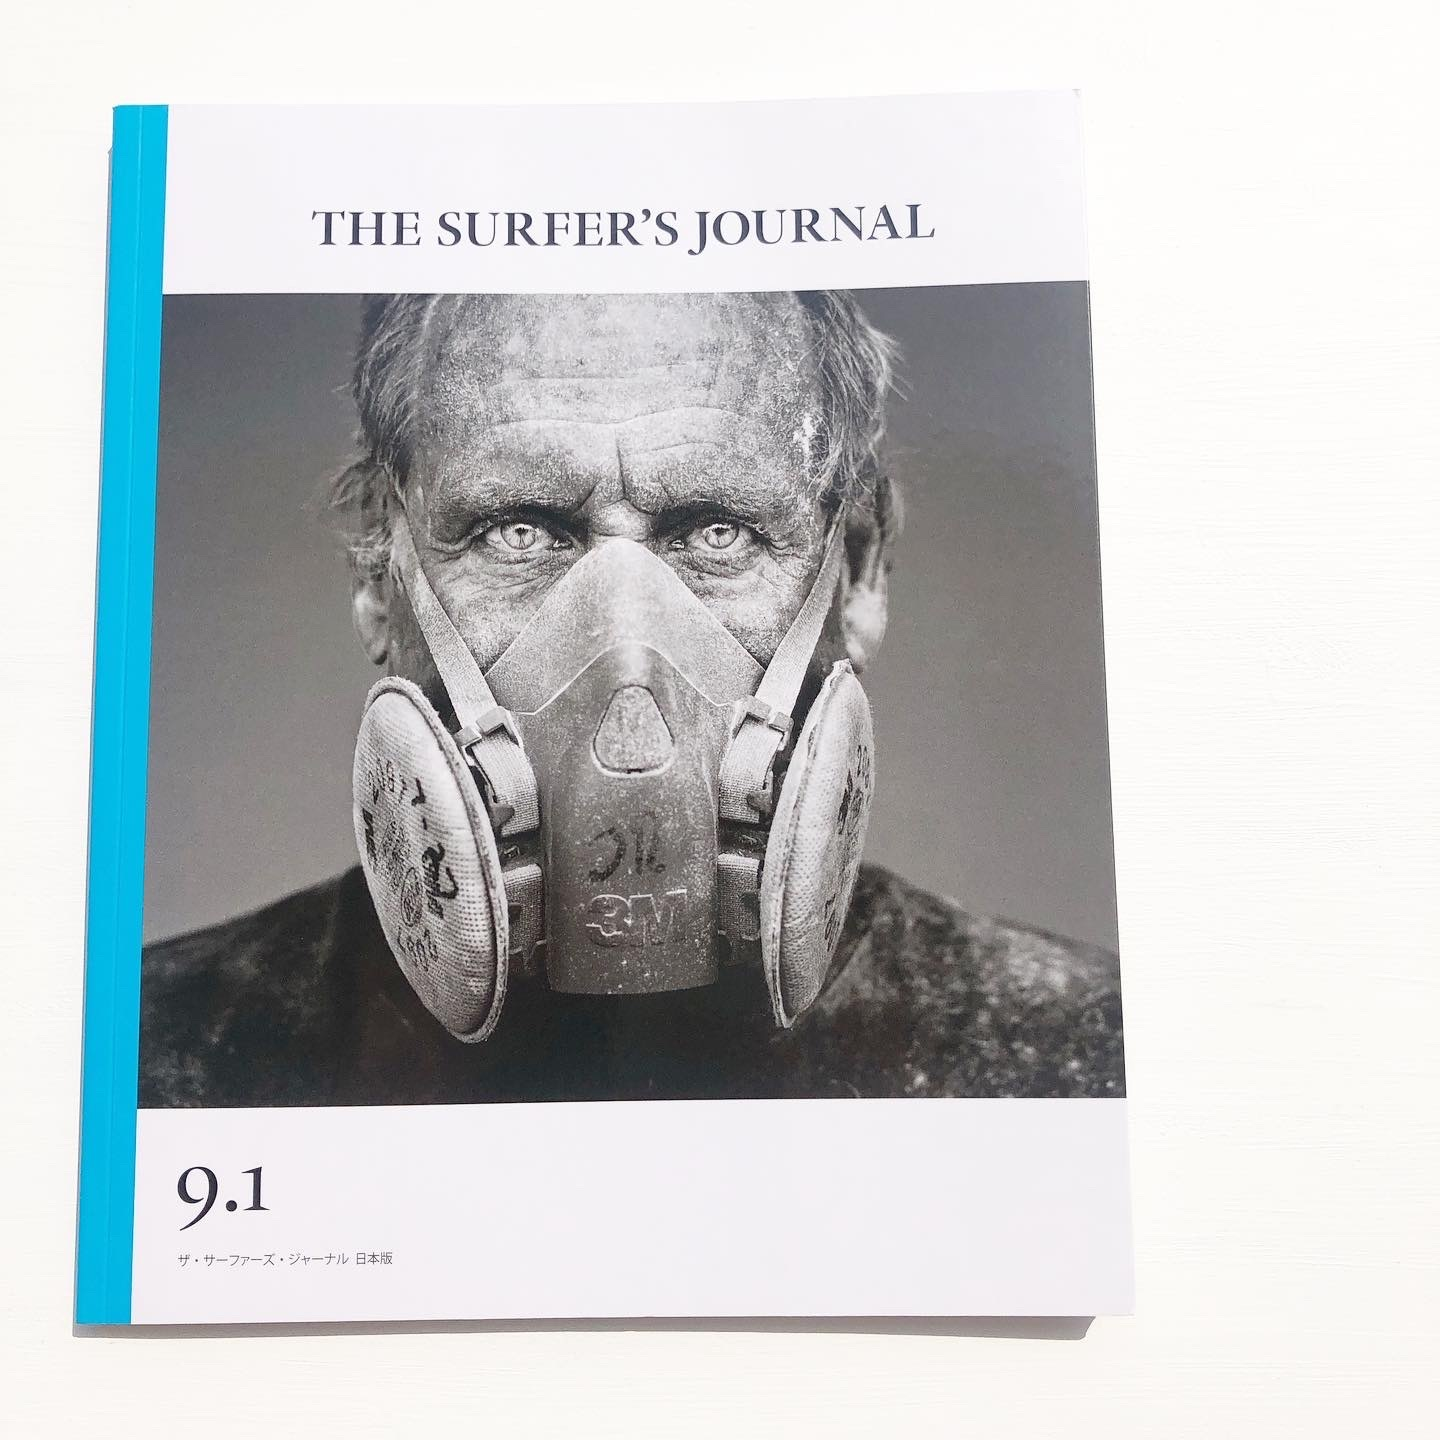 THE SURFER'S JOURNAL JAPAN 9.1